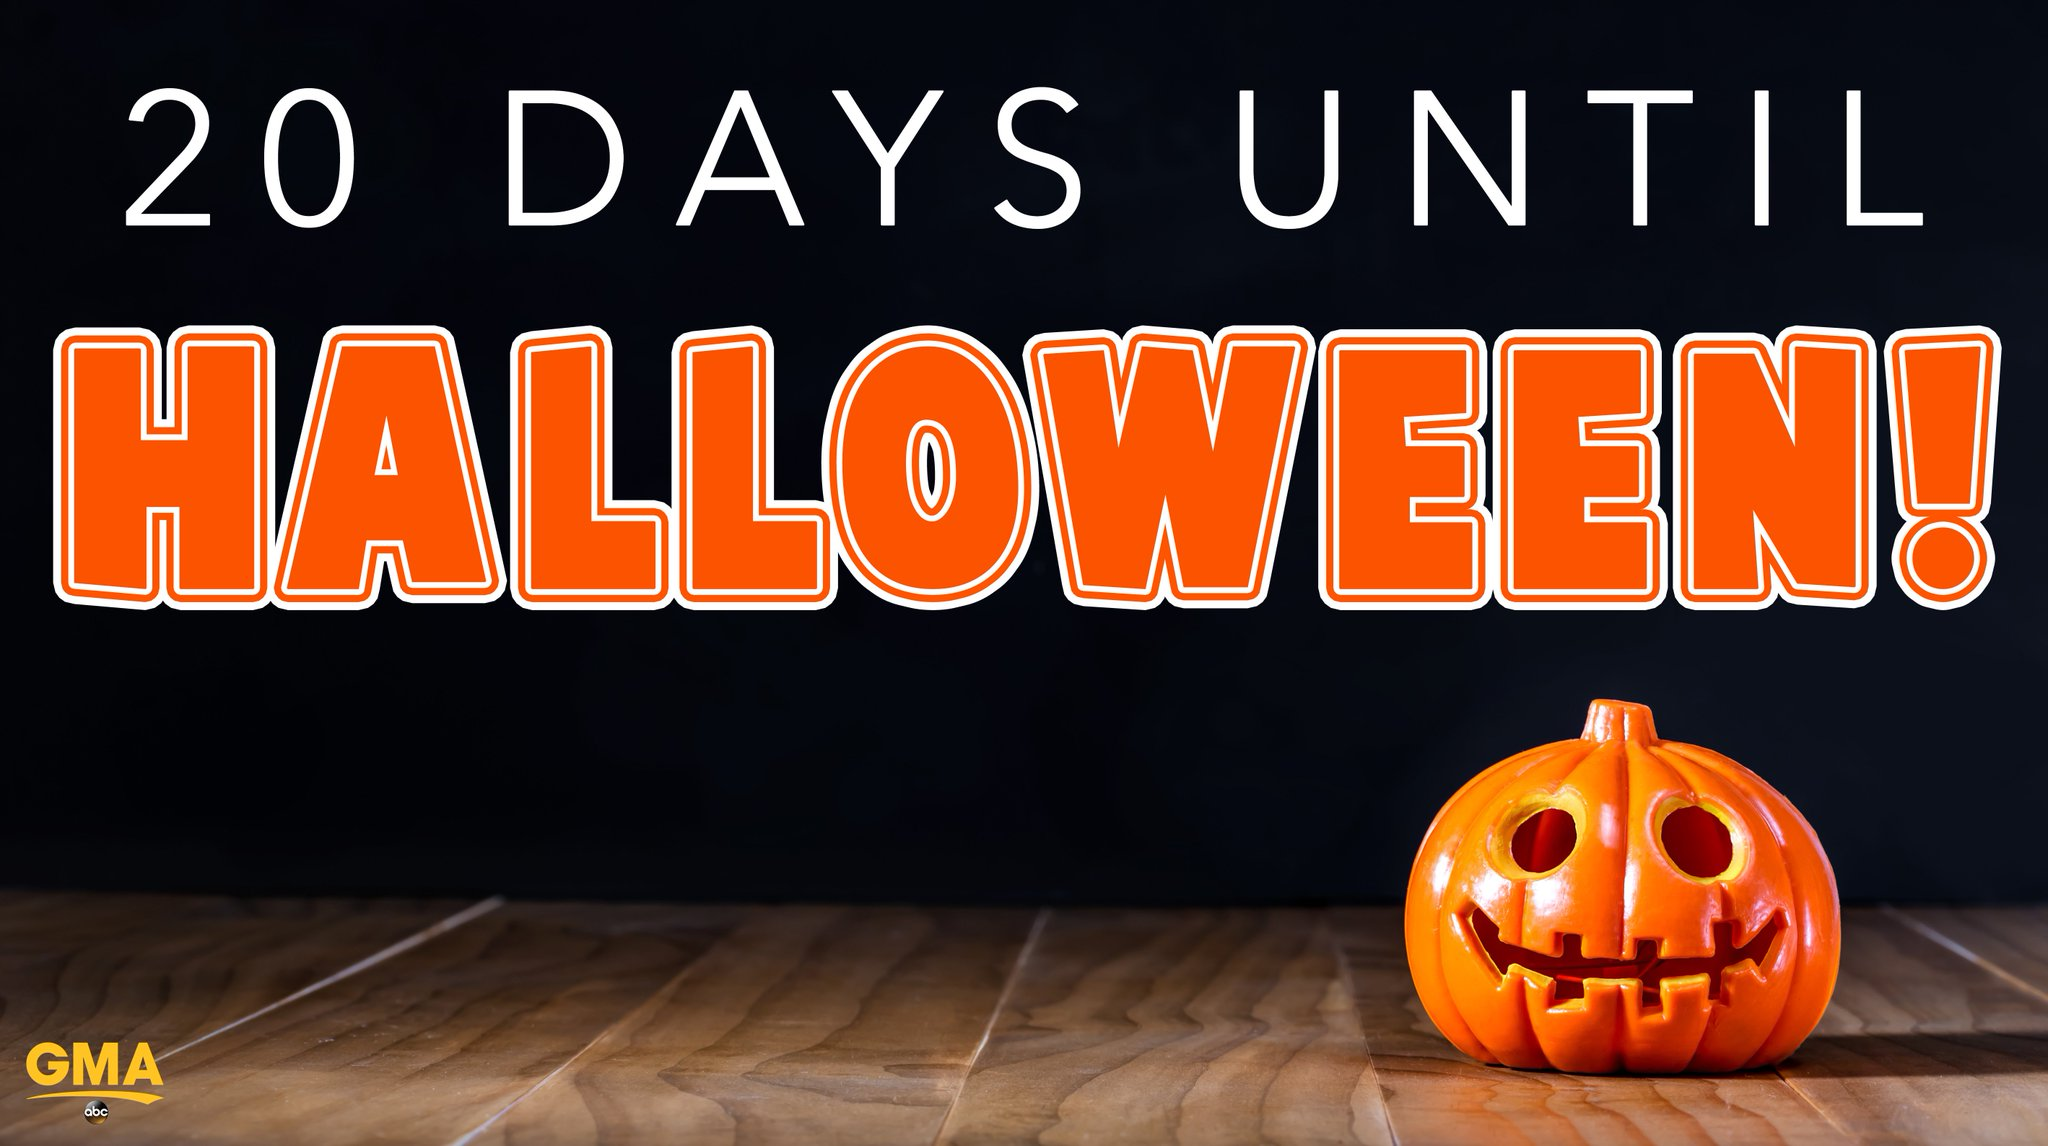 20 days until Halloween. �� https://t.co/BL1jZybS2G